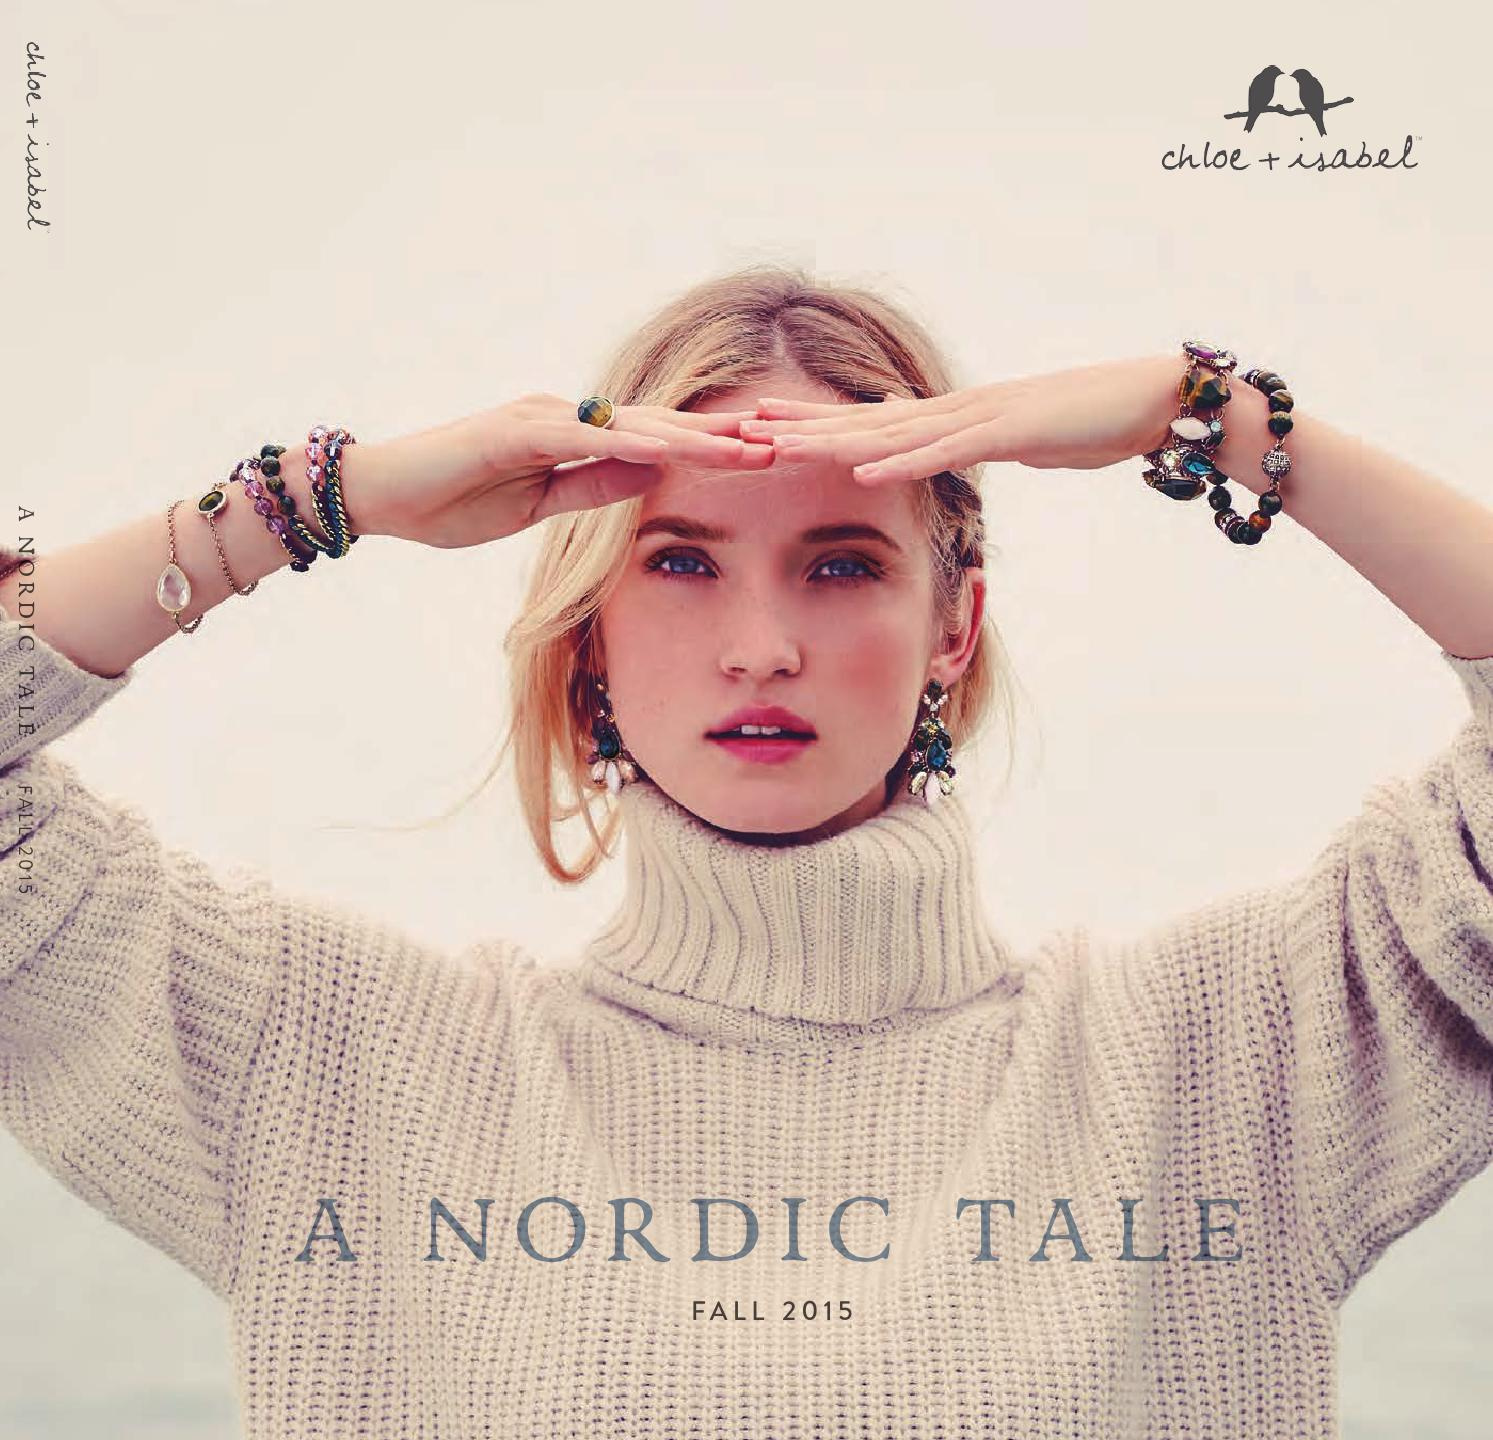 0145b5f45d2 A Nordic Tale - Fall 2015 Collection by Chloe + Isabel - issuu